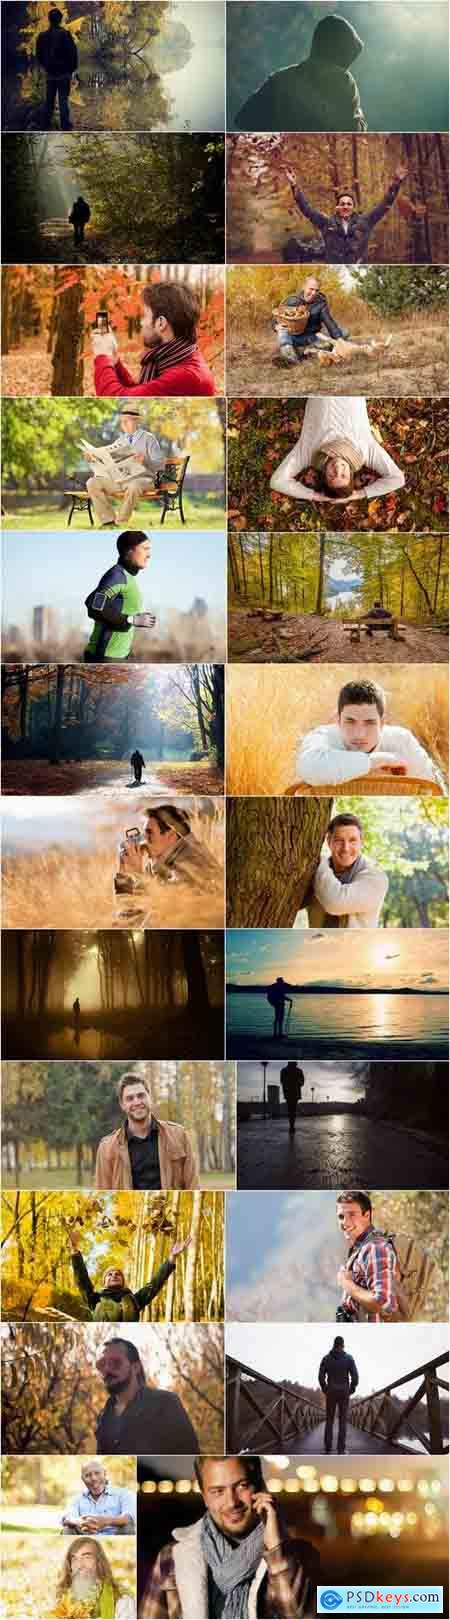 Autumn nature man boy yellow leaf forest 25 HQ Jpeg